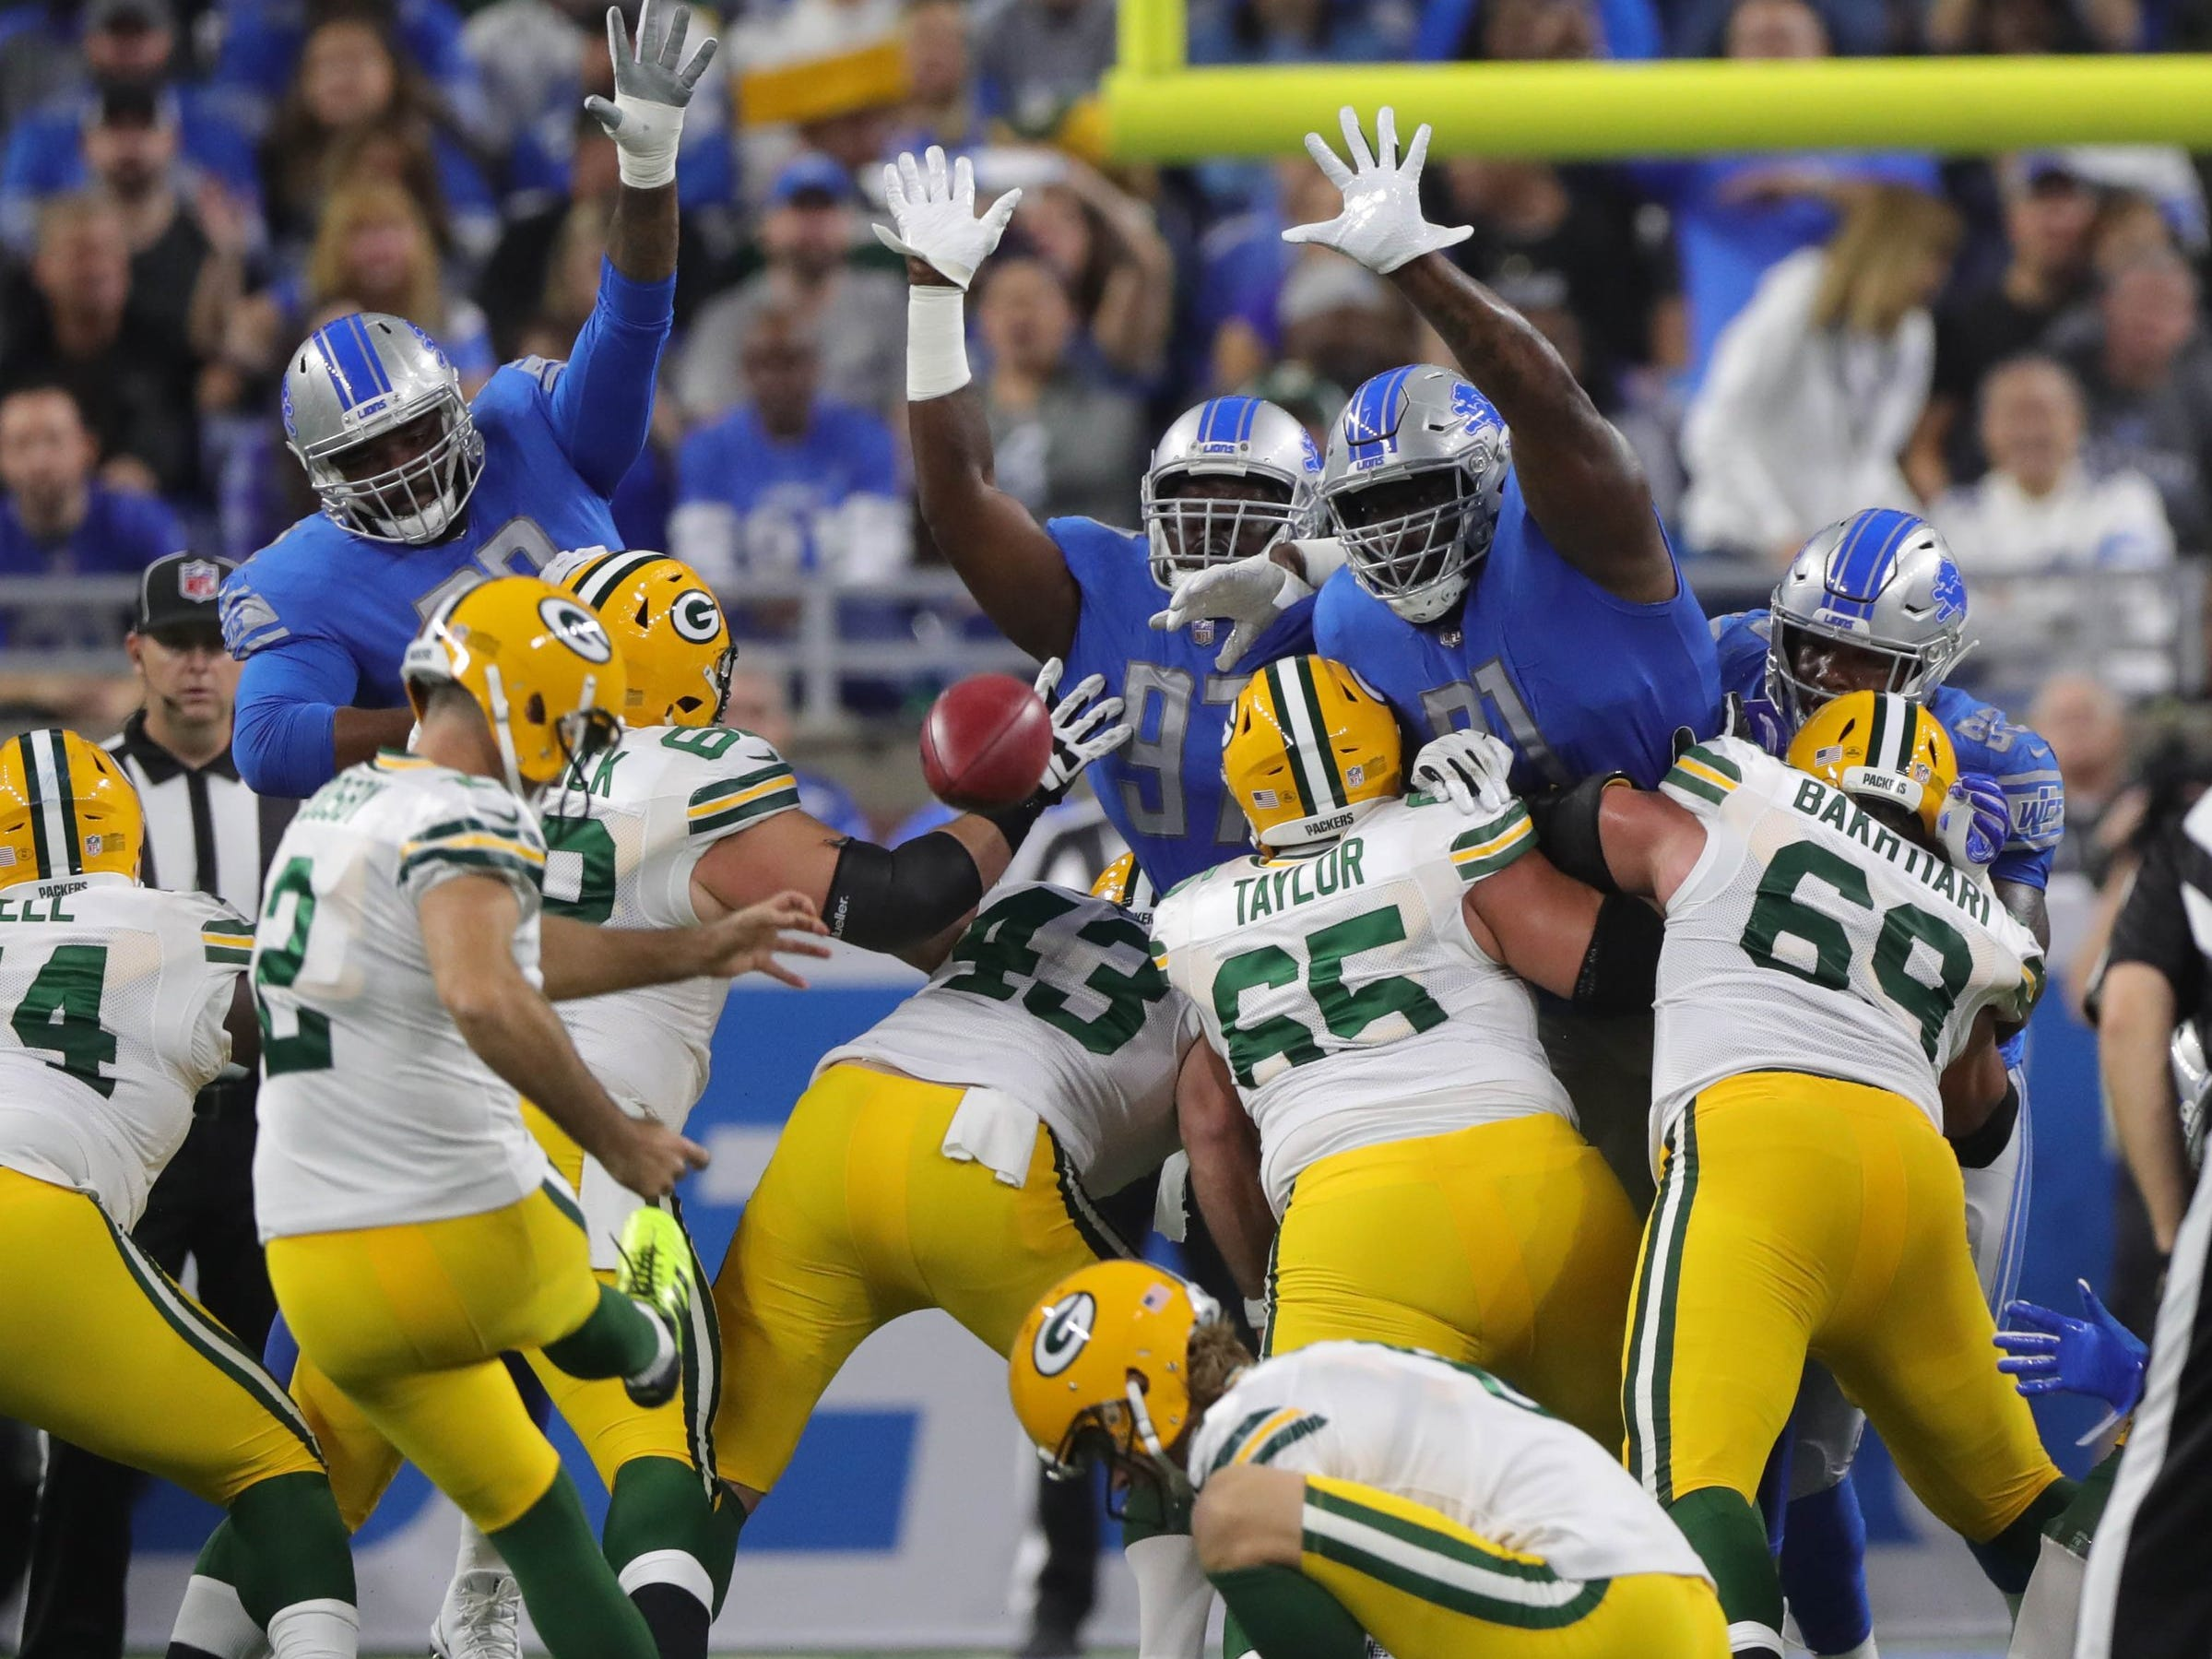 The Lions' defense tries to block a field goal by Packers kicker Mason Crosby, who missed, during the first half of the Lions' 31-23 win on Sunday, Oct. 7, 2018, at Ford Field.